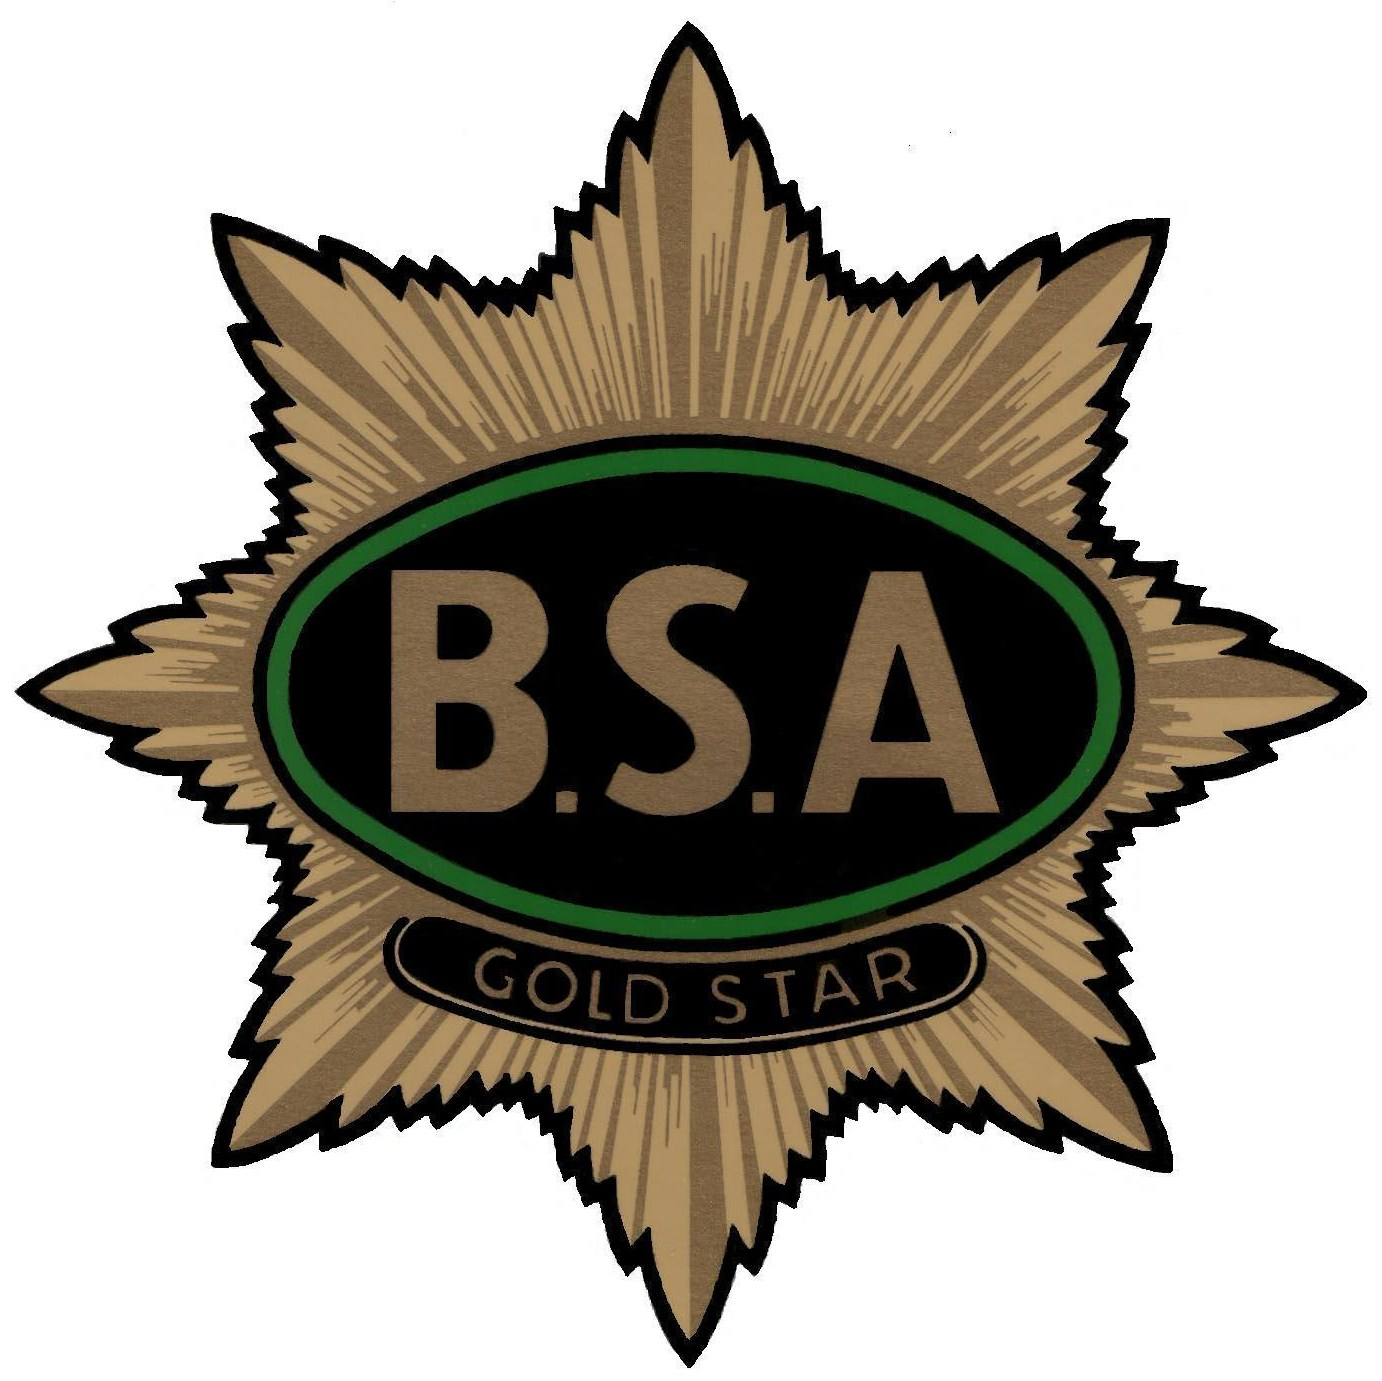 Antique Motorcycles: History of BSA Motorcycle